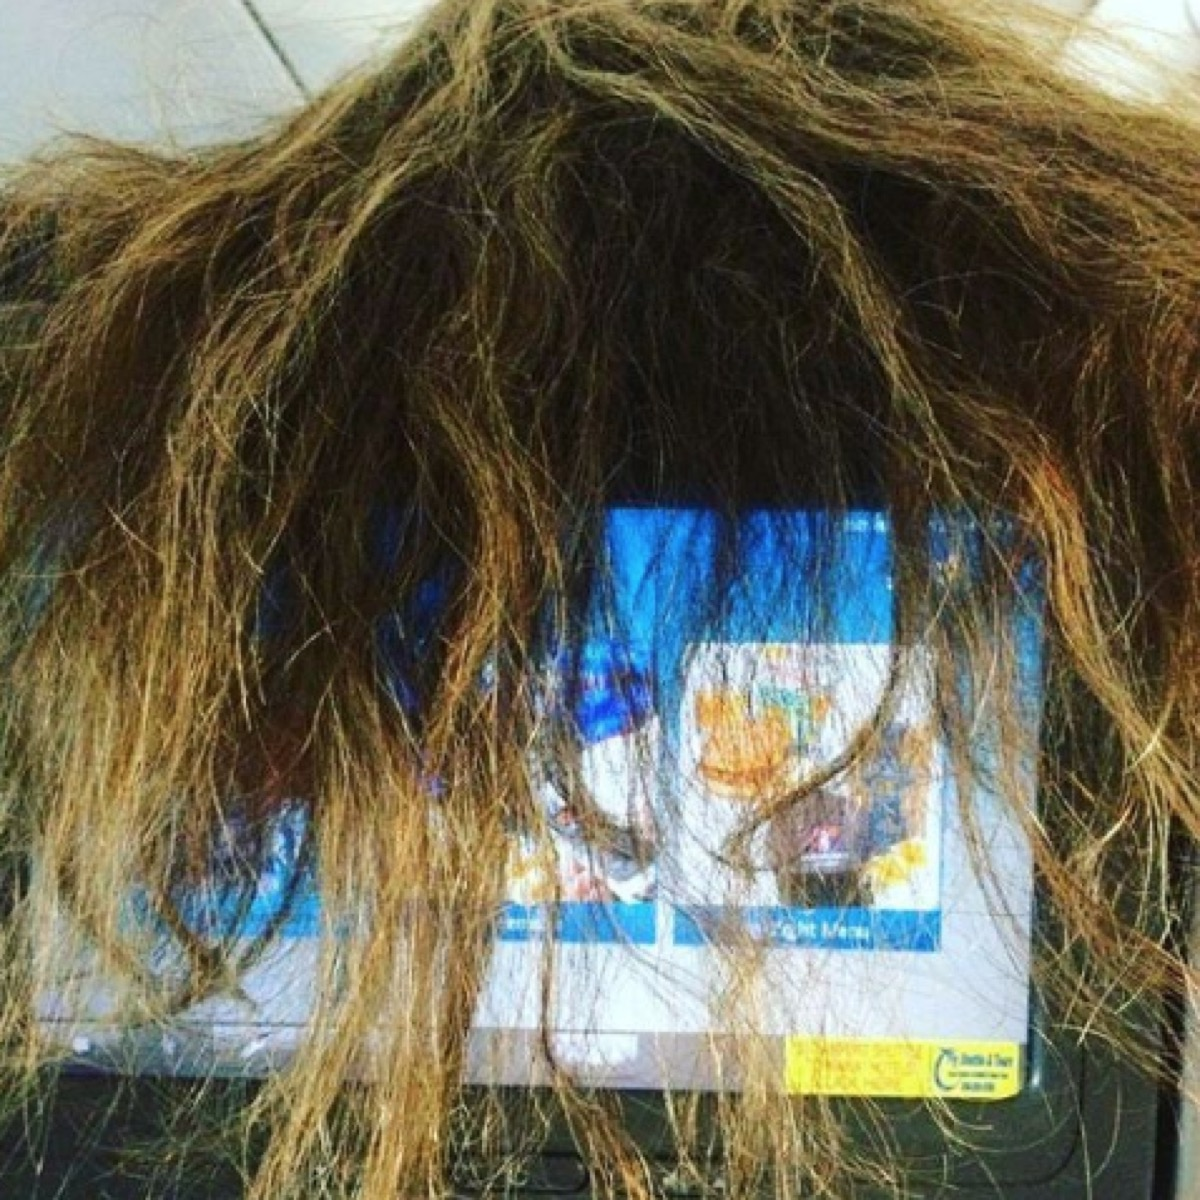 Woman's Hair Covers Screen On Airplane Seat, Example of Terrible Airplane Passengers